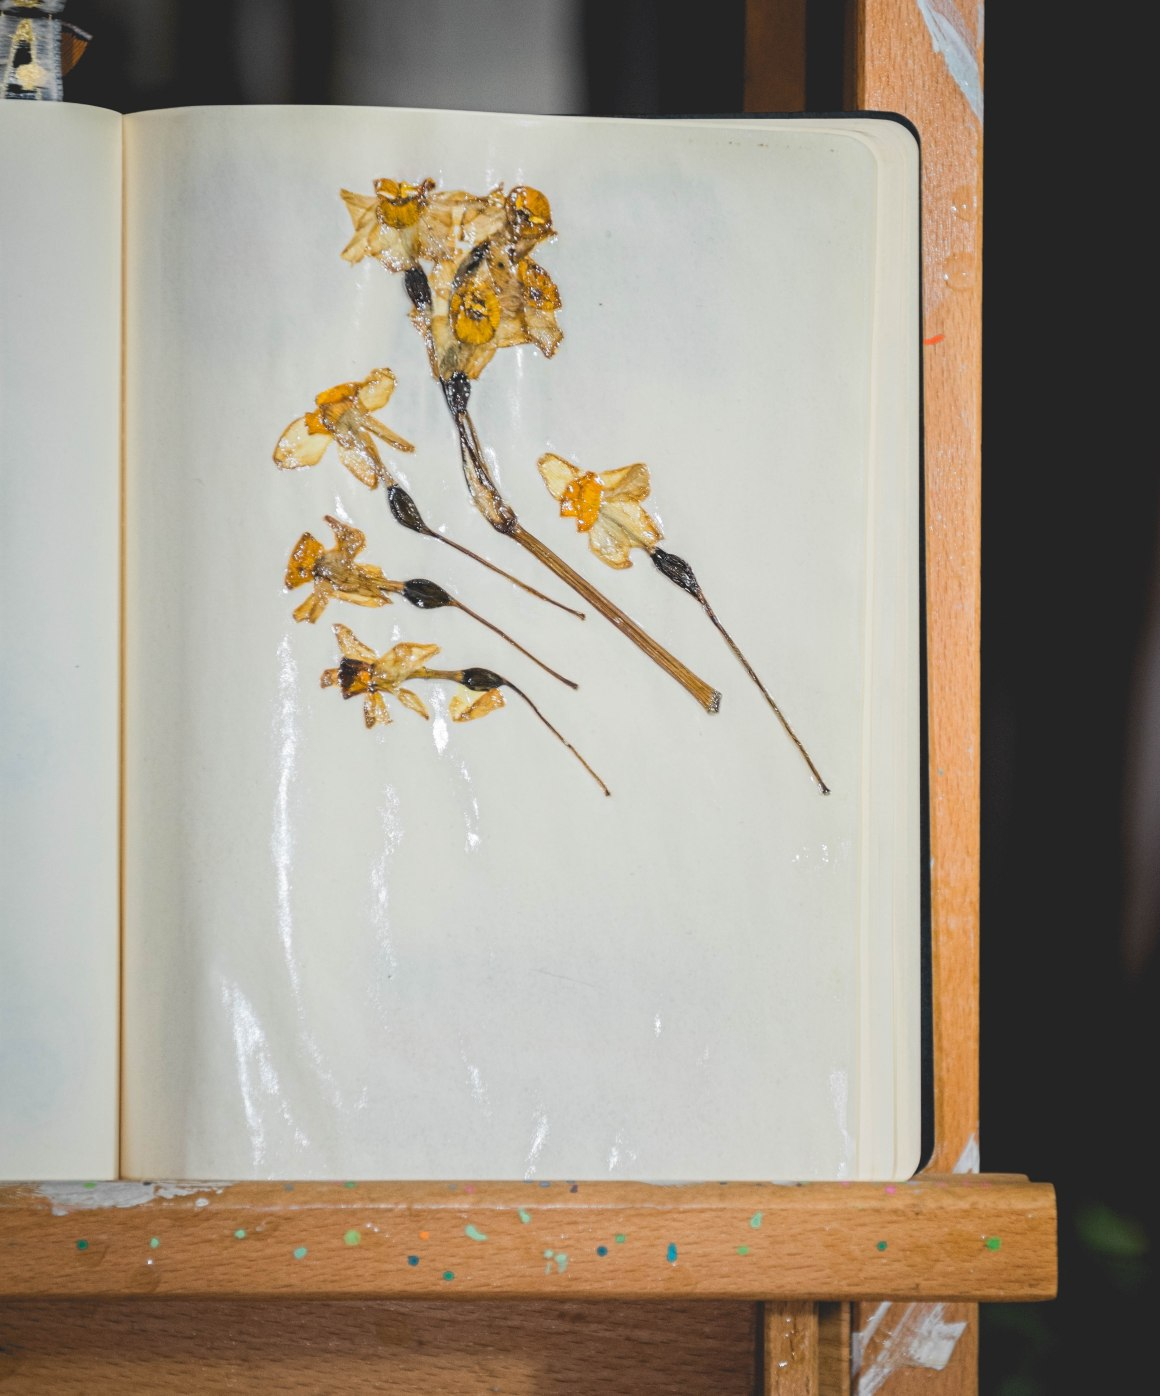 daffodils, still life photography, nargis, narcissus, flowers, art exhibit, friends, preserving flowers, dried flowers, flower art, artwork made of dried flowers